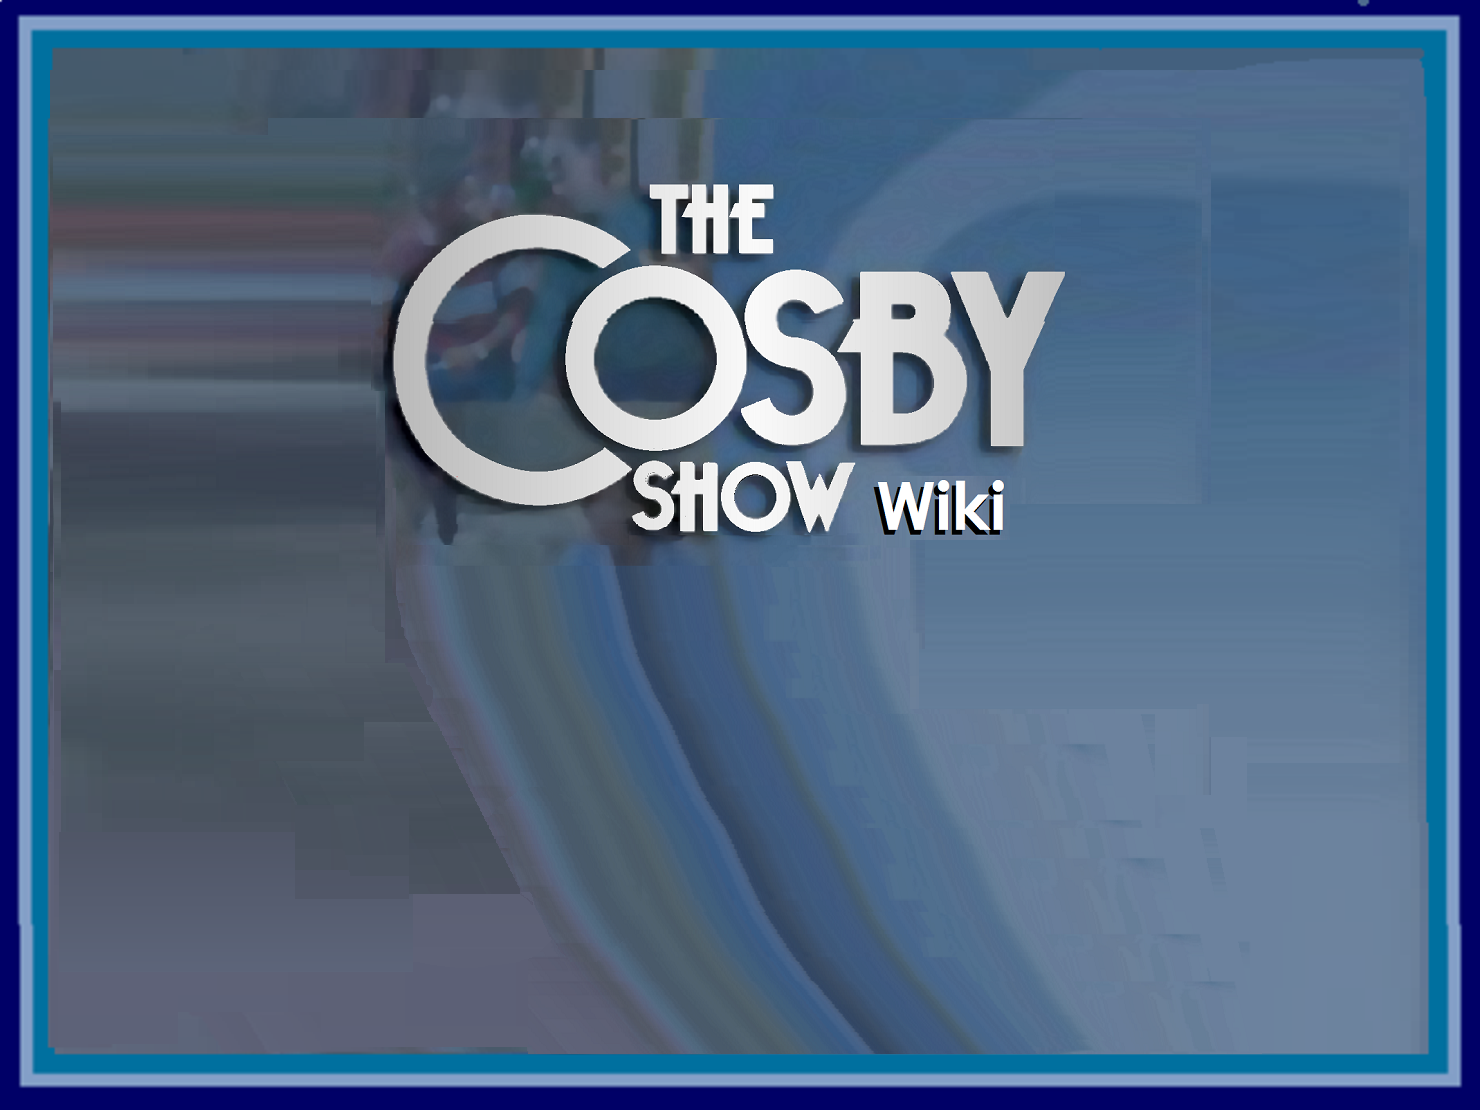 The Cosby Show Wiki